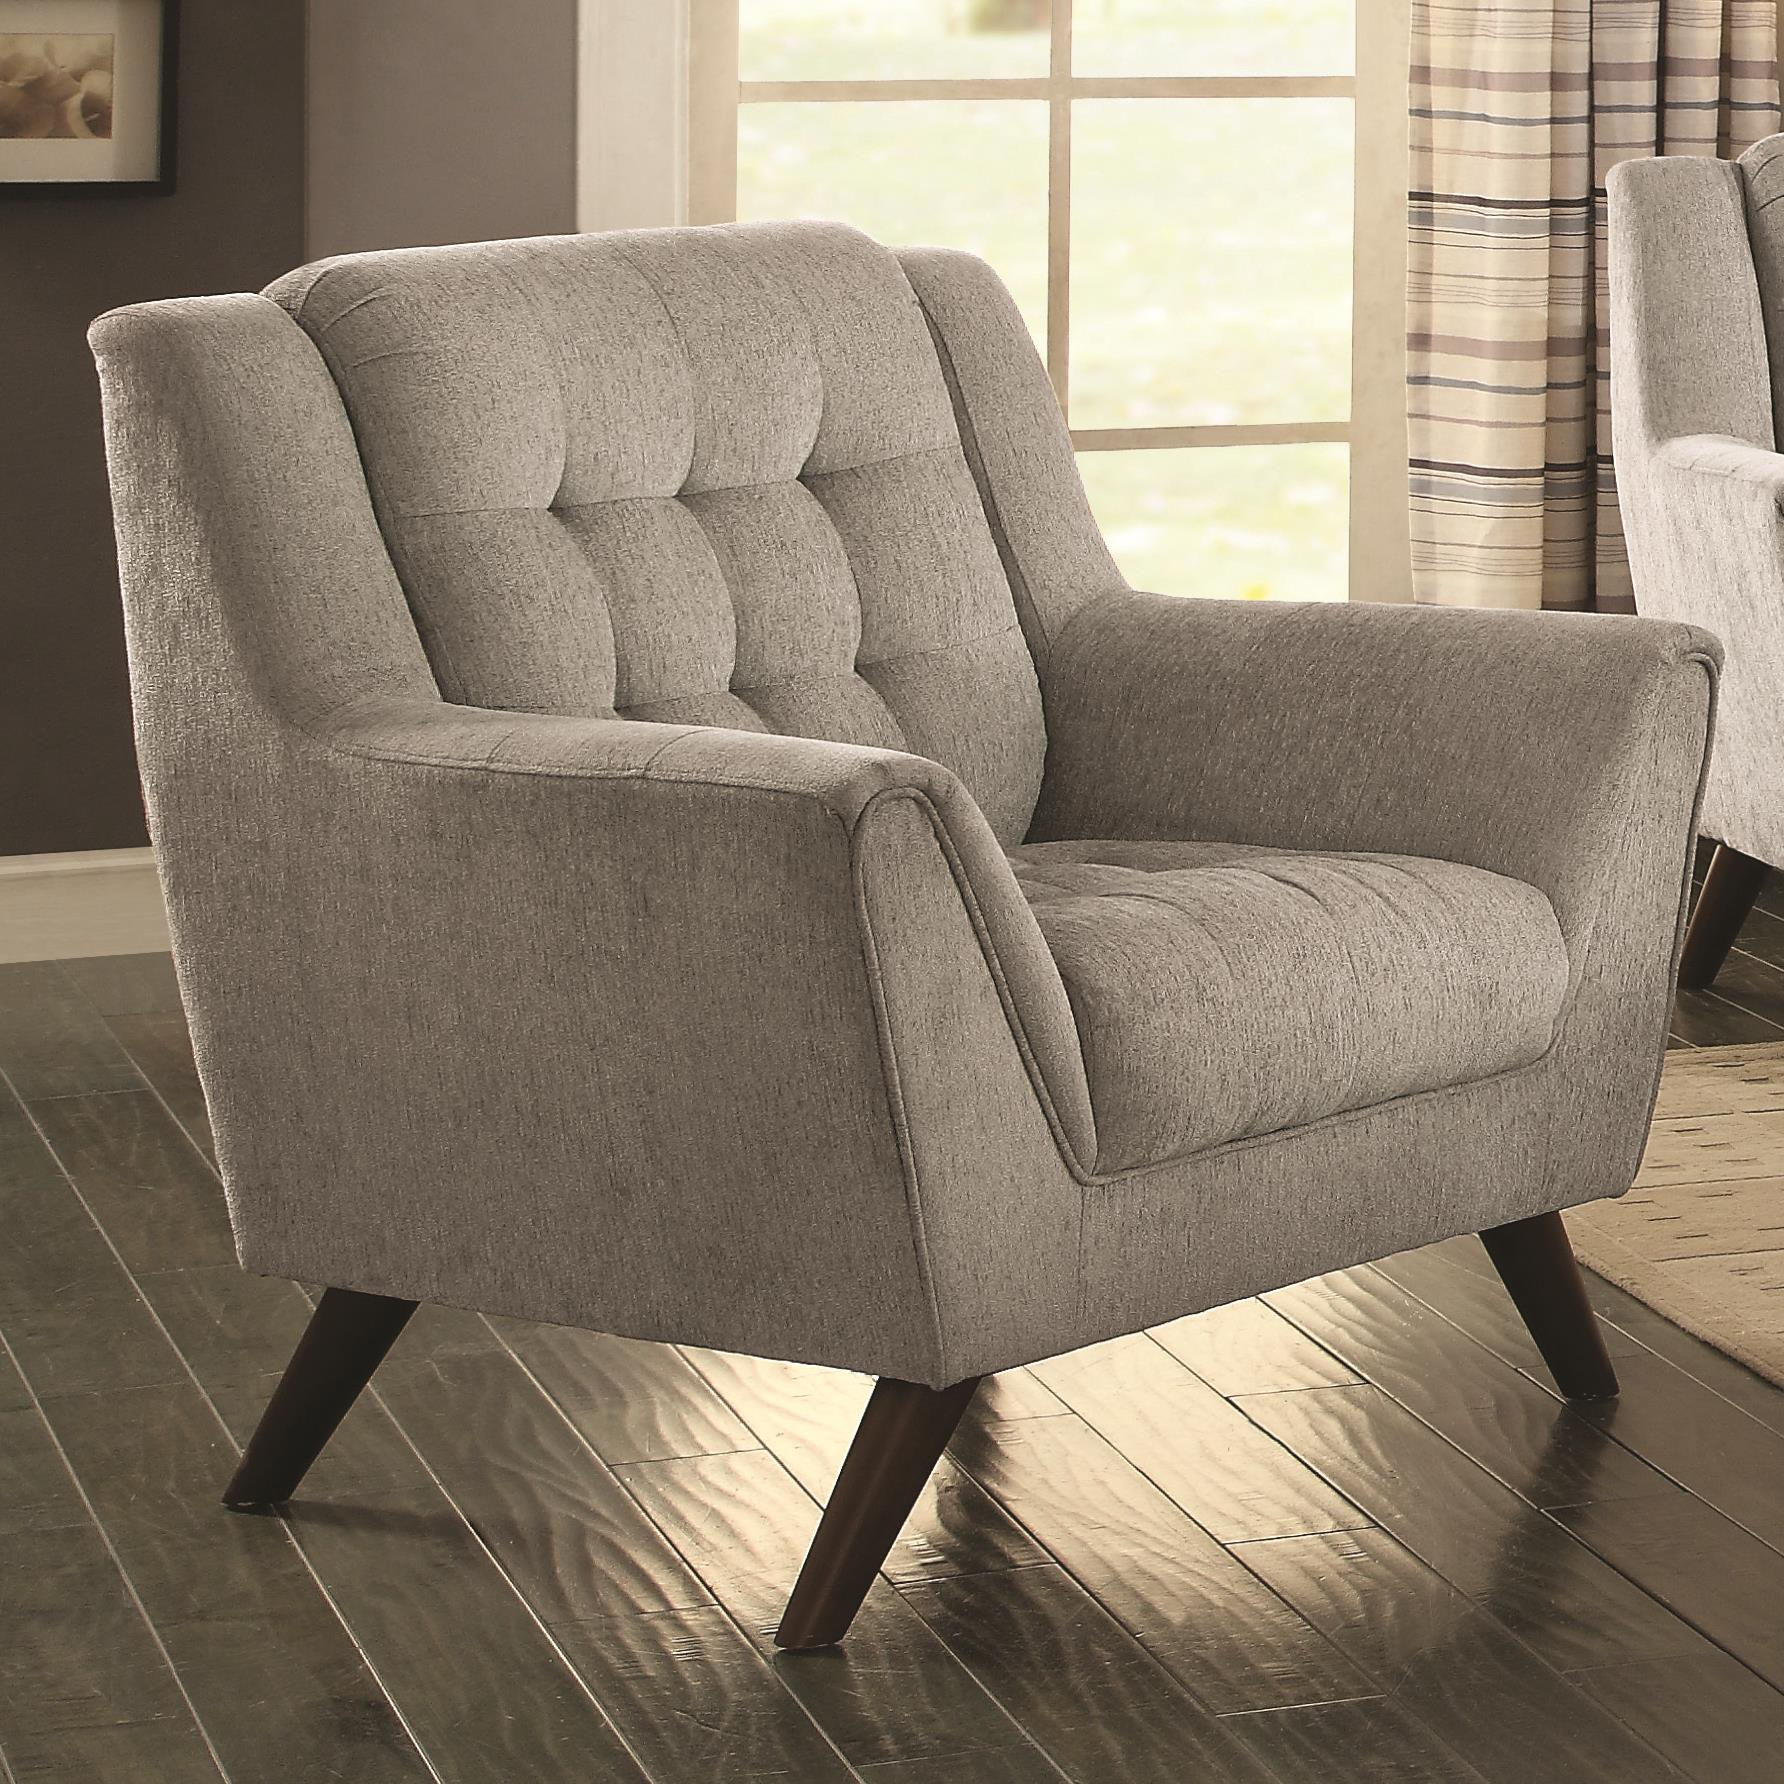 Coaster Baby Natalia Chair - Item Number: 511033